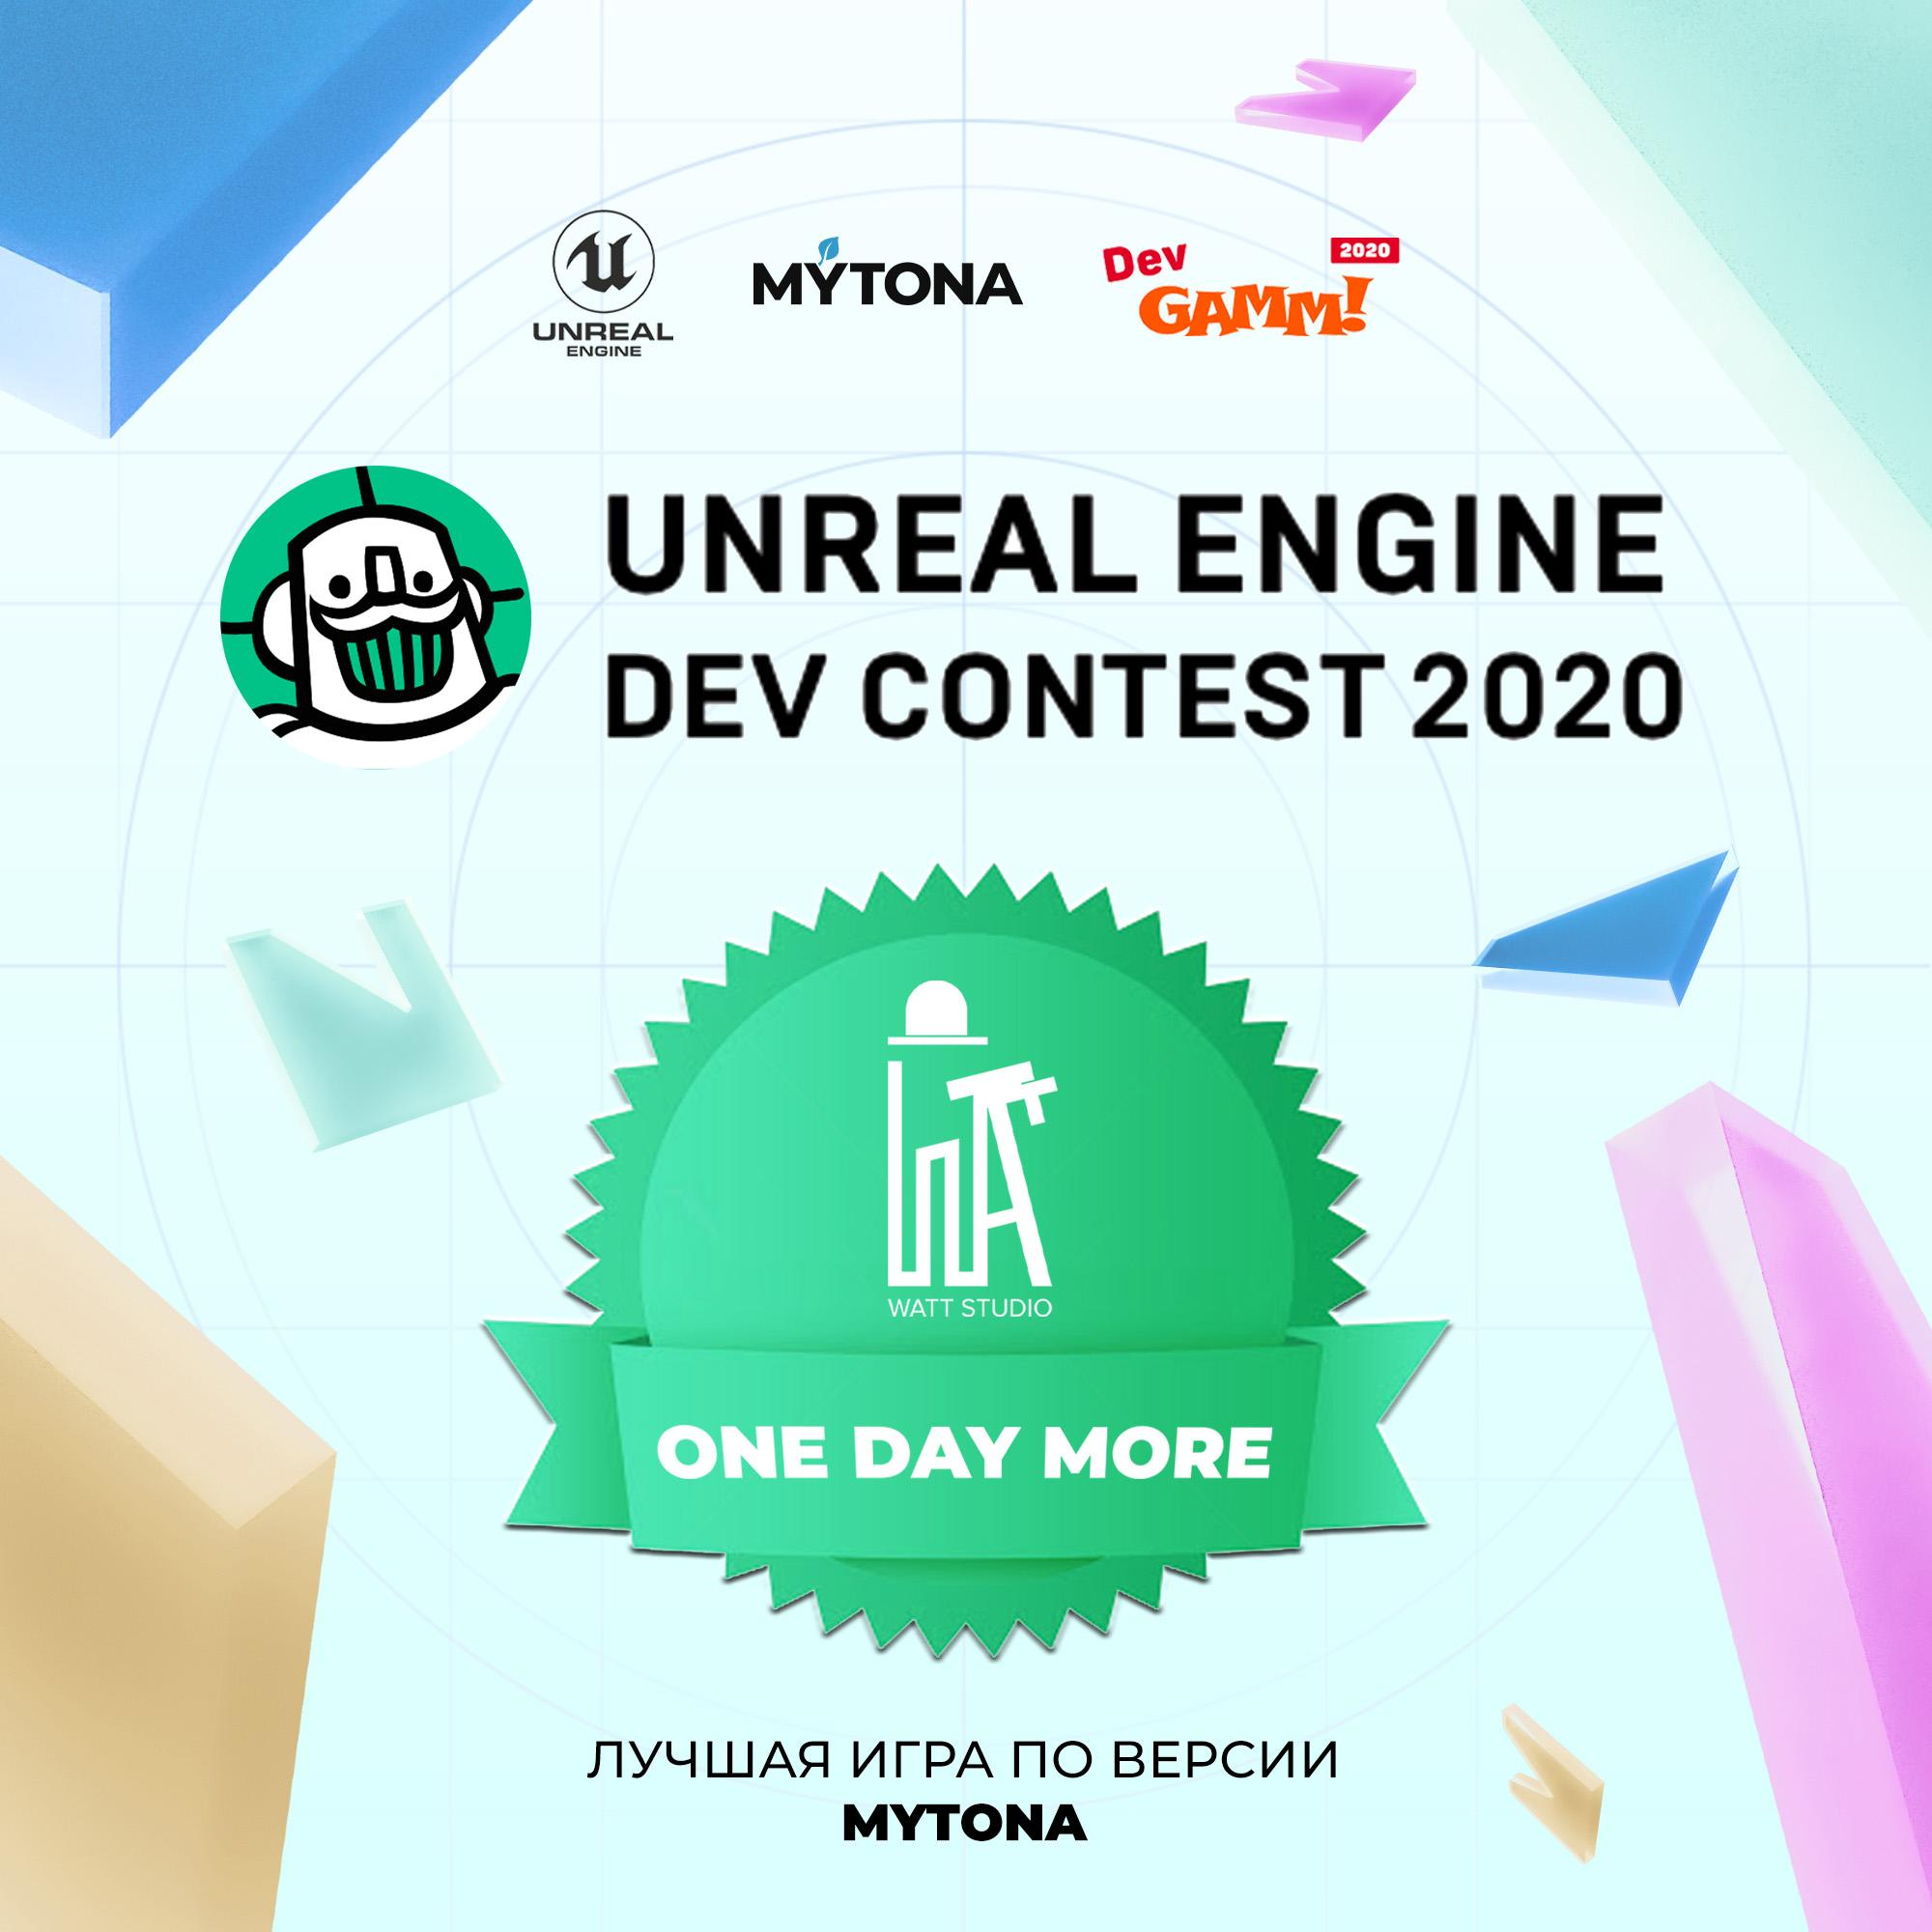 UNREAL ENGINE DEV CONTEST 2020